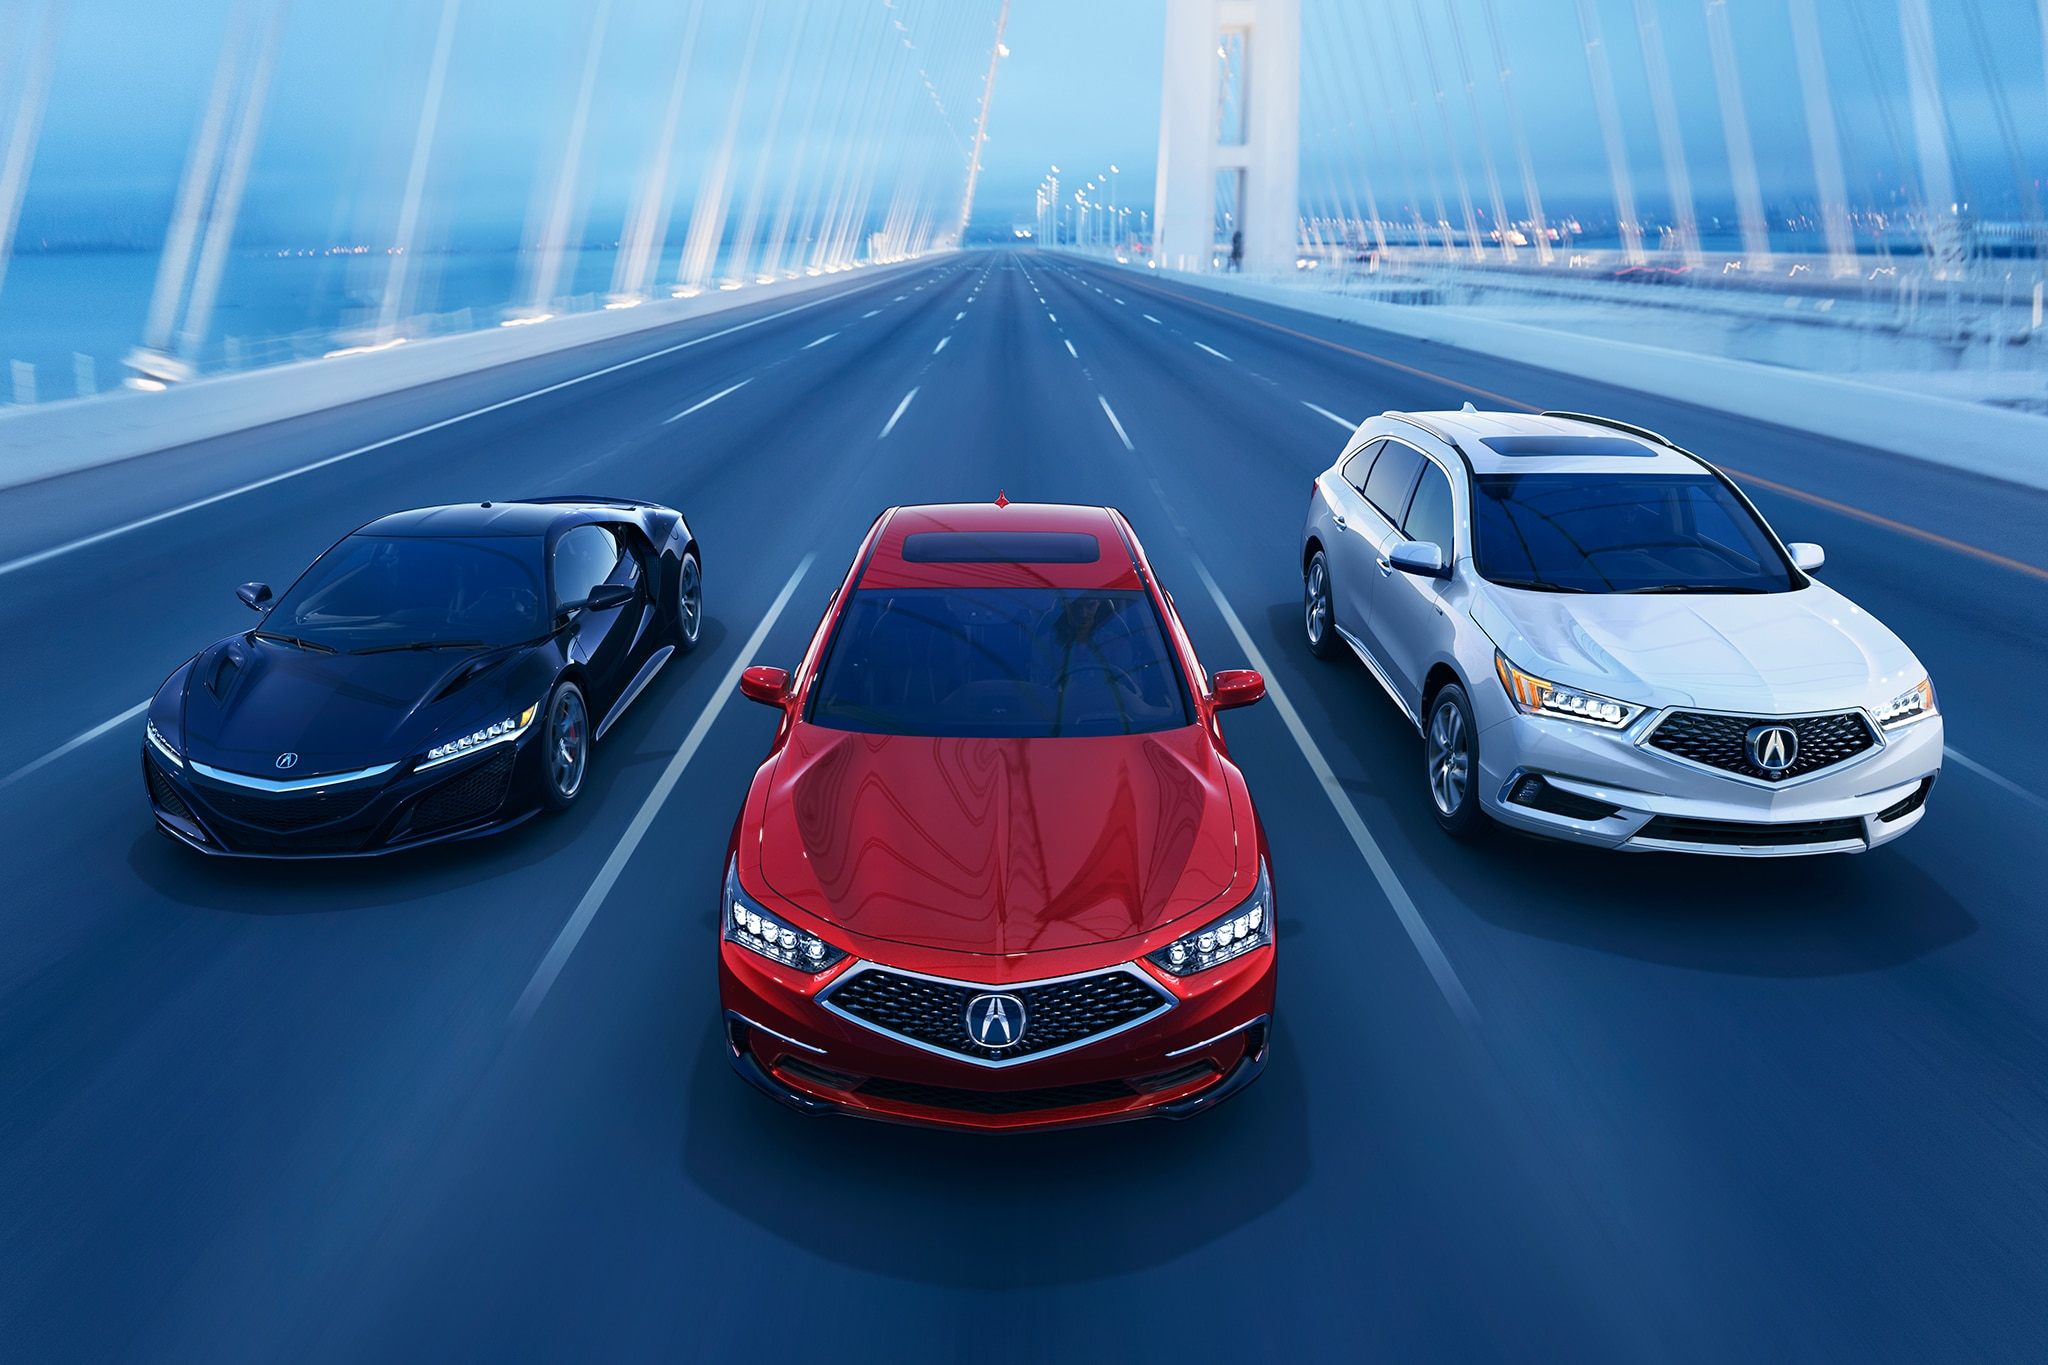 2018 acura line. interesting line u201cthis redesign of the 2018 acura rlx is transformational creating road  presence and styling that better reflect underlying performance capabilities  with acura line r